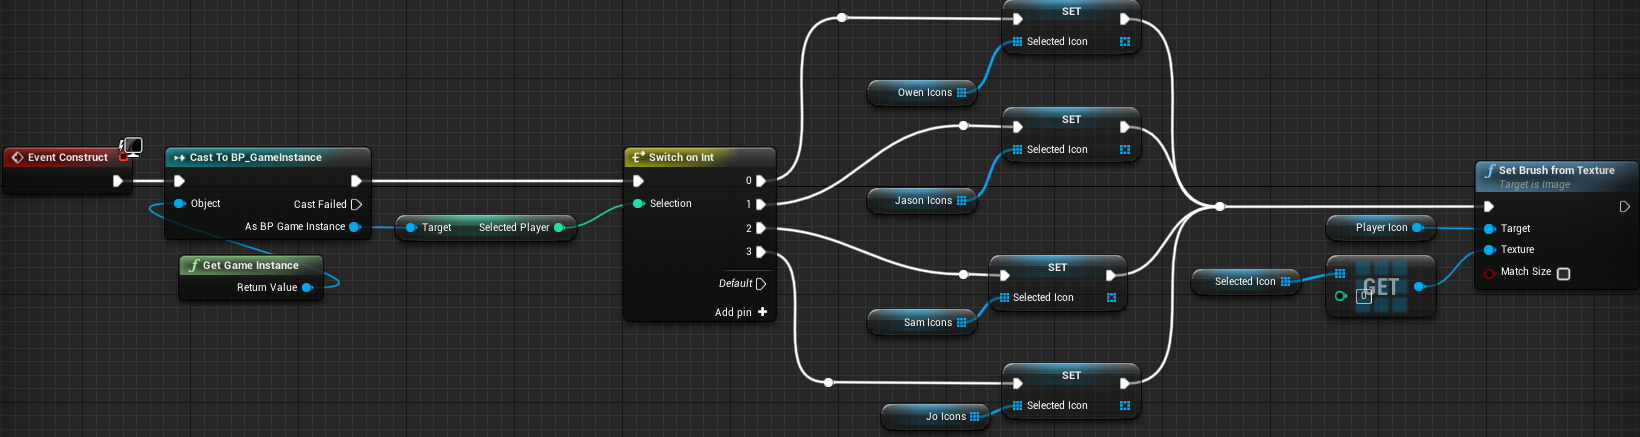 Fig 23 -  Changing the player icon system to set a single array and a single brush texture node